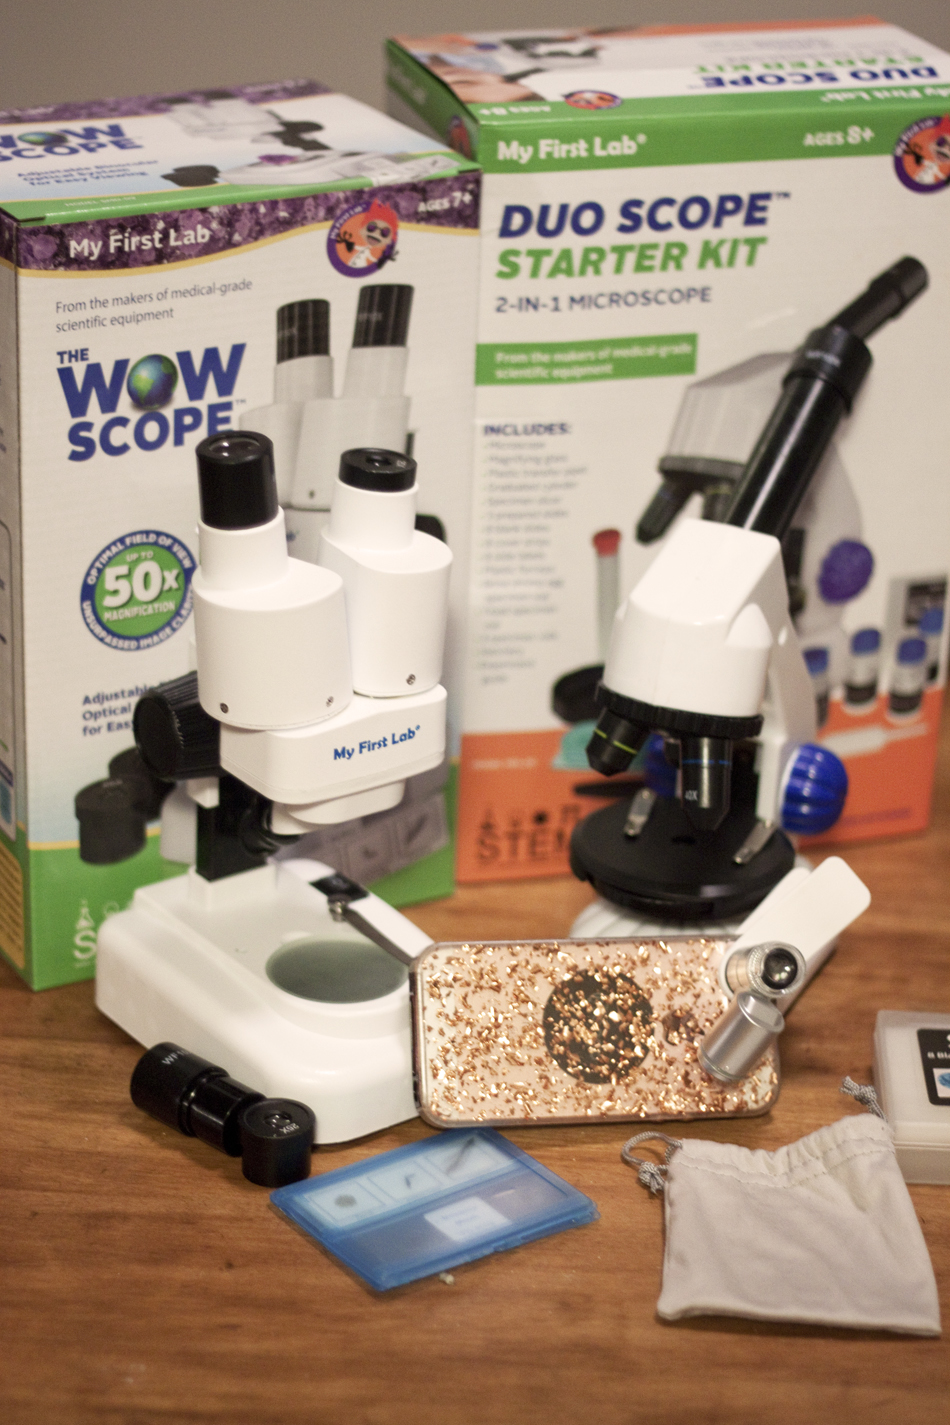 My First Lab Microscope WOW Scope Duo Scope Smartphone Inspector